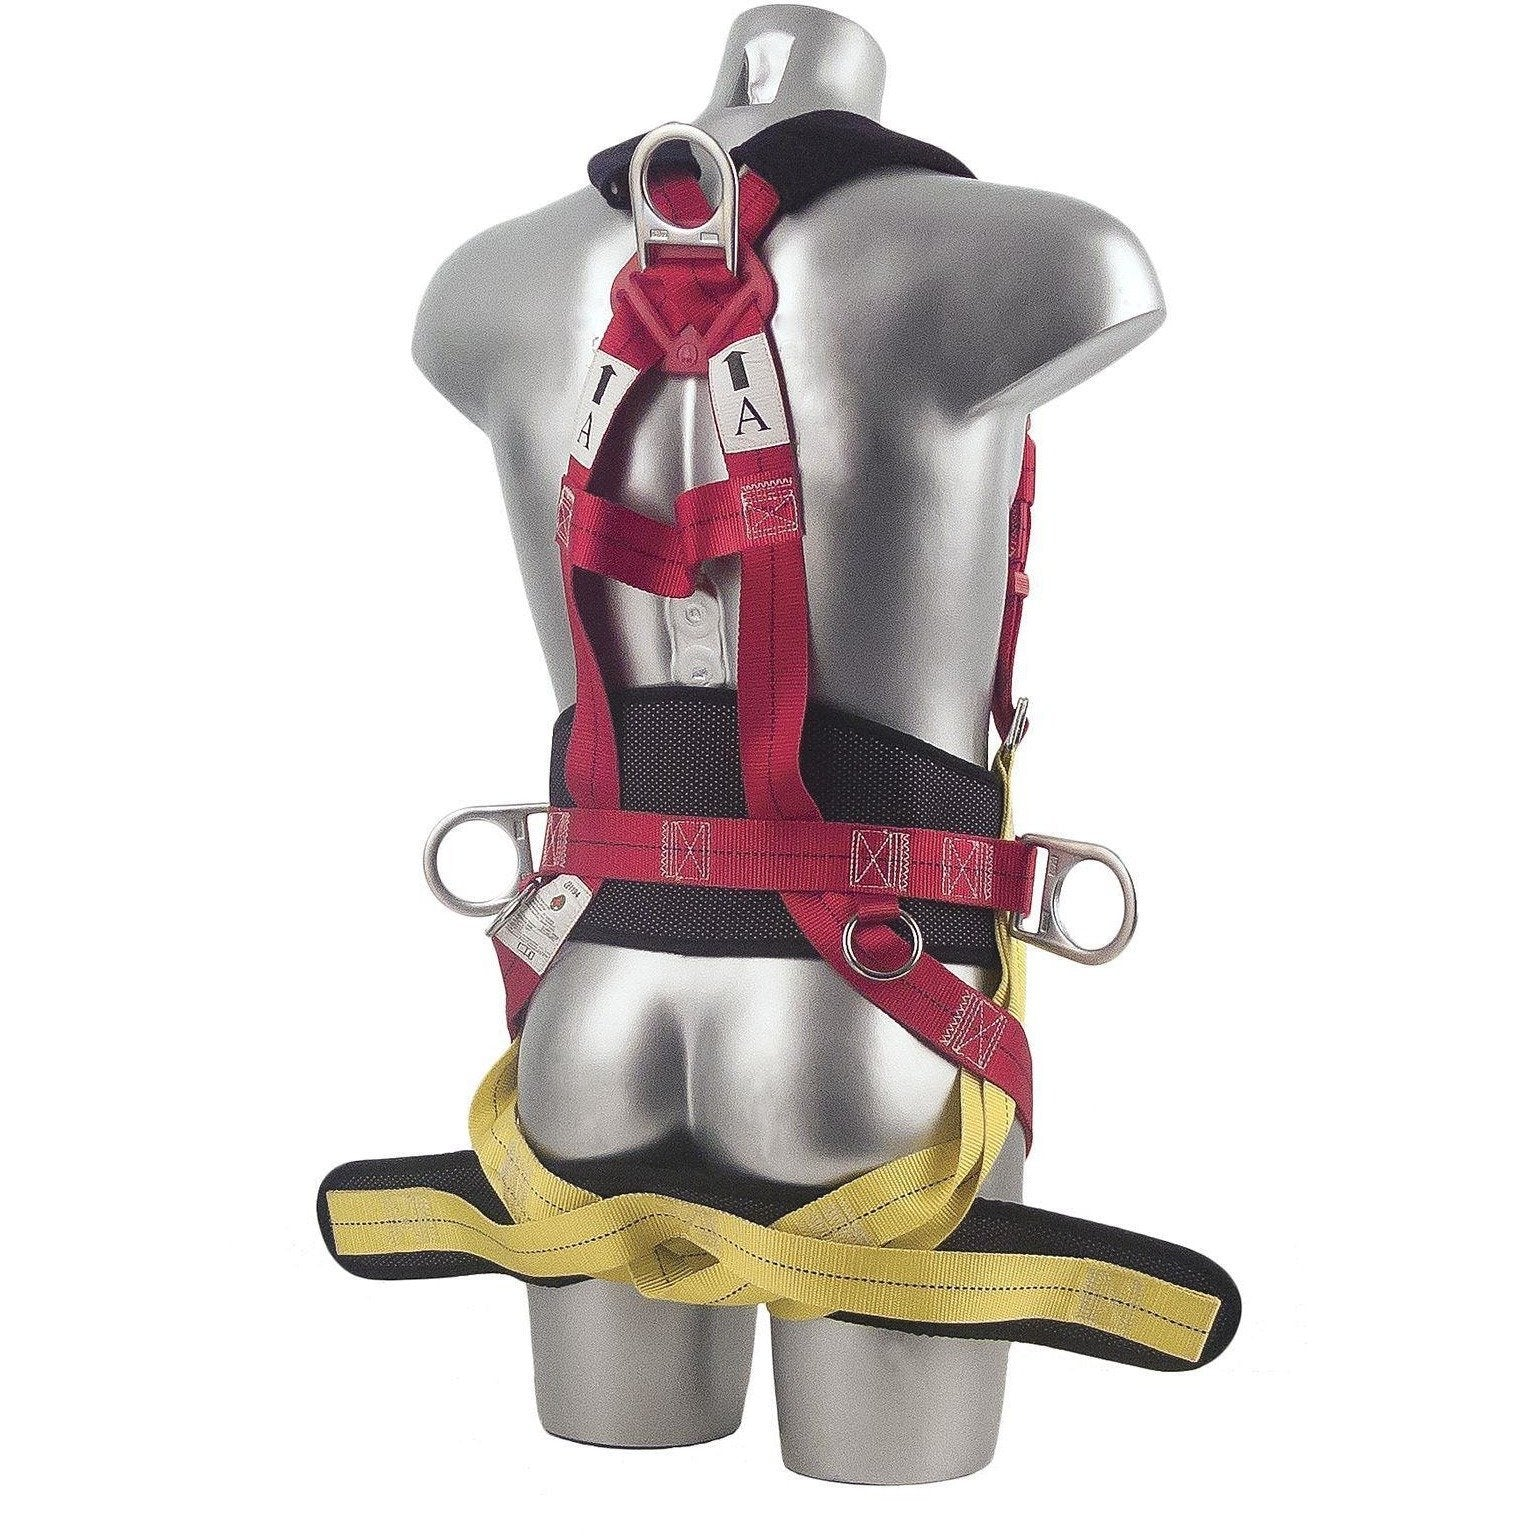 Portwest Portwest 3 Point Harness Comfort Plus Red One Size  FP18 - reid outdoors